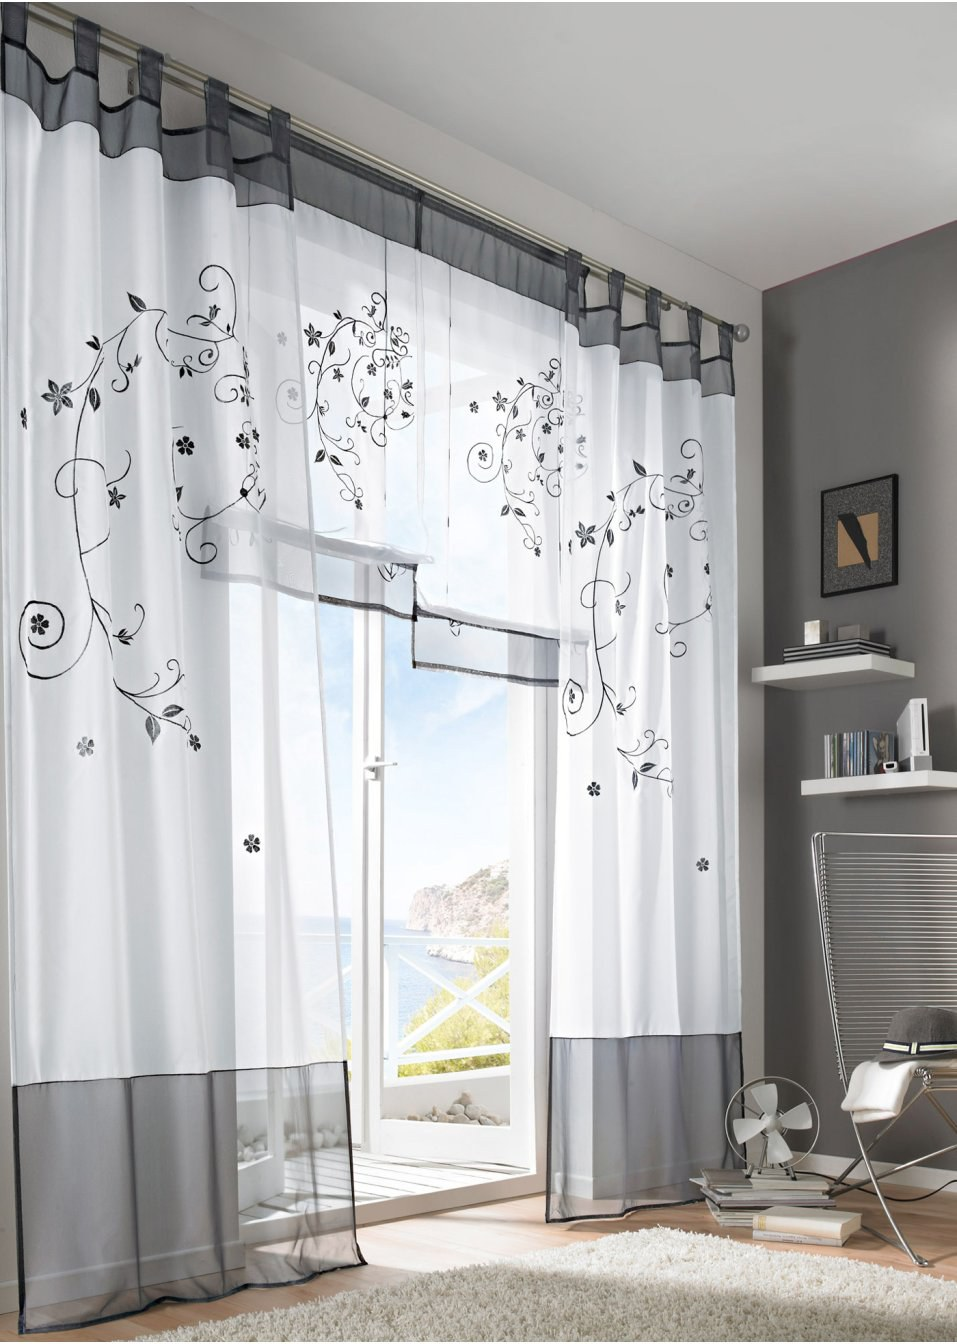 Rustic Curtains For Living Room Us 29 8 Roman Shade Kids Cortina Rustic Curtain Window Screening Home Decoration Decor Beautiful Curtains For Living Room In Curtains From Home